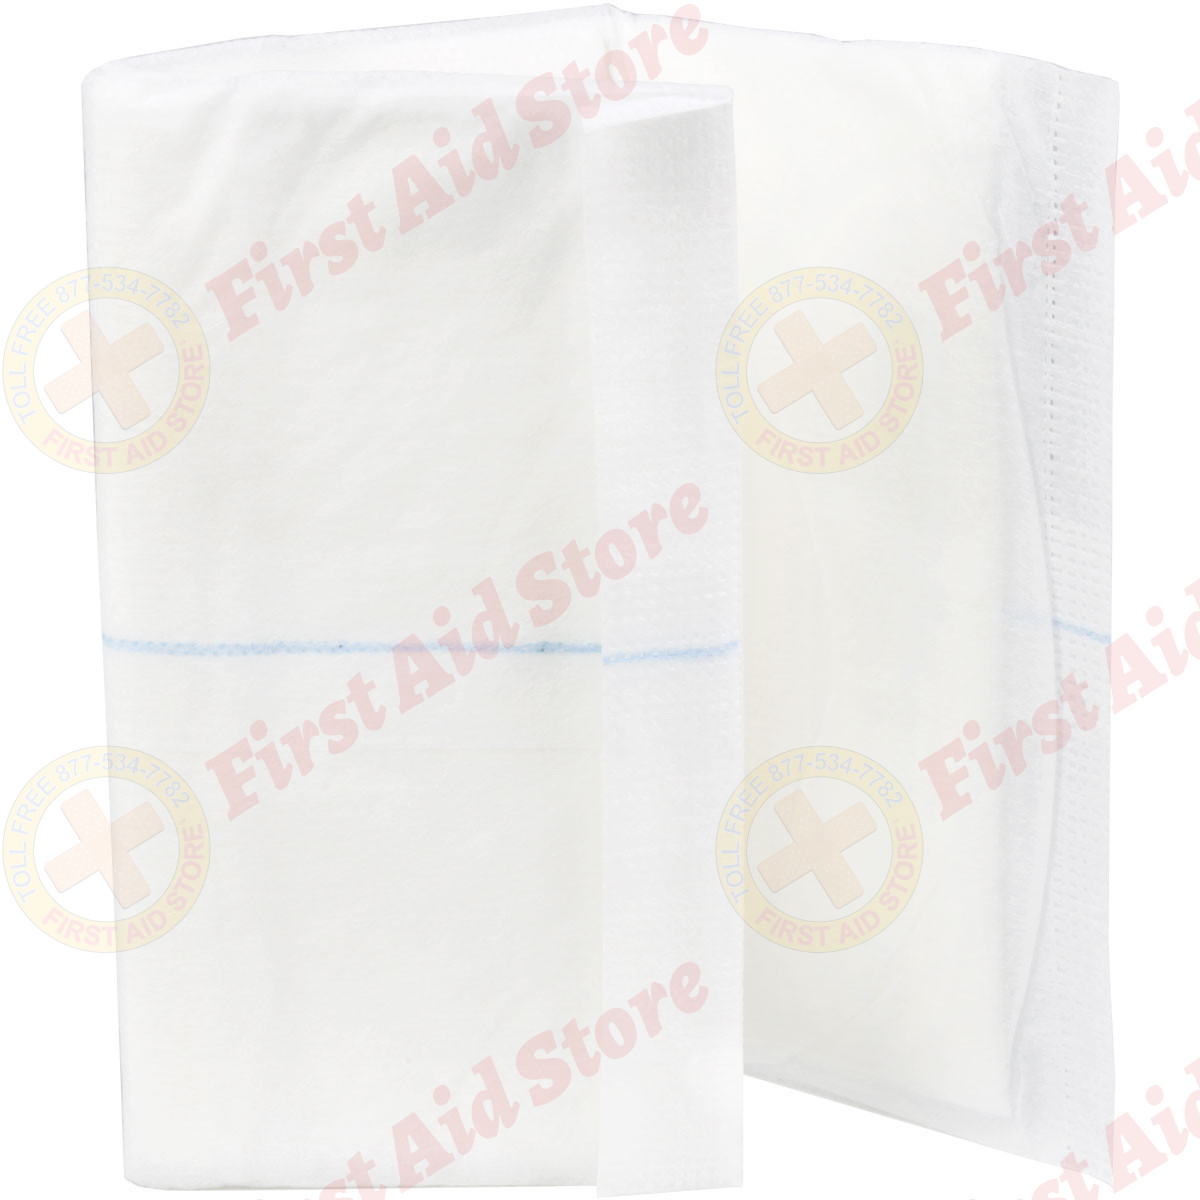 Sterile The First Aid StoreTM ABD Combine Pad 5 In X 9